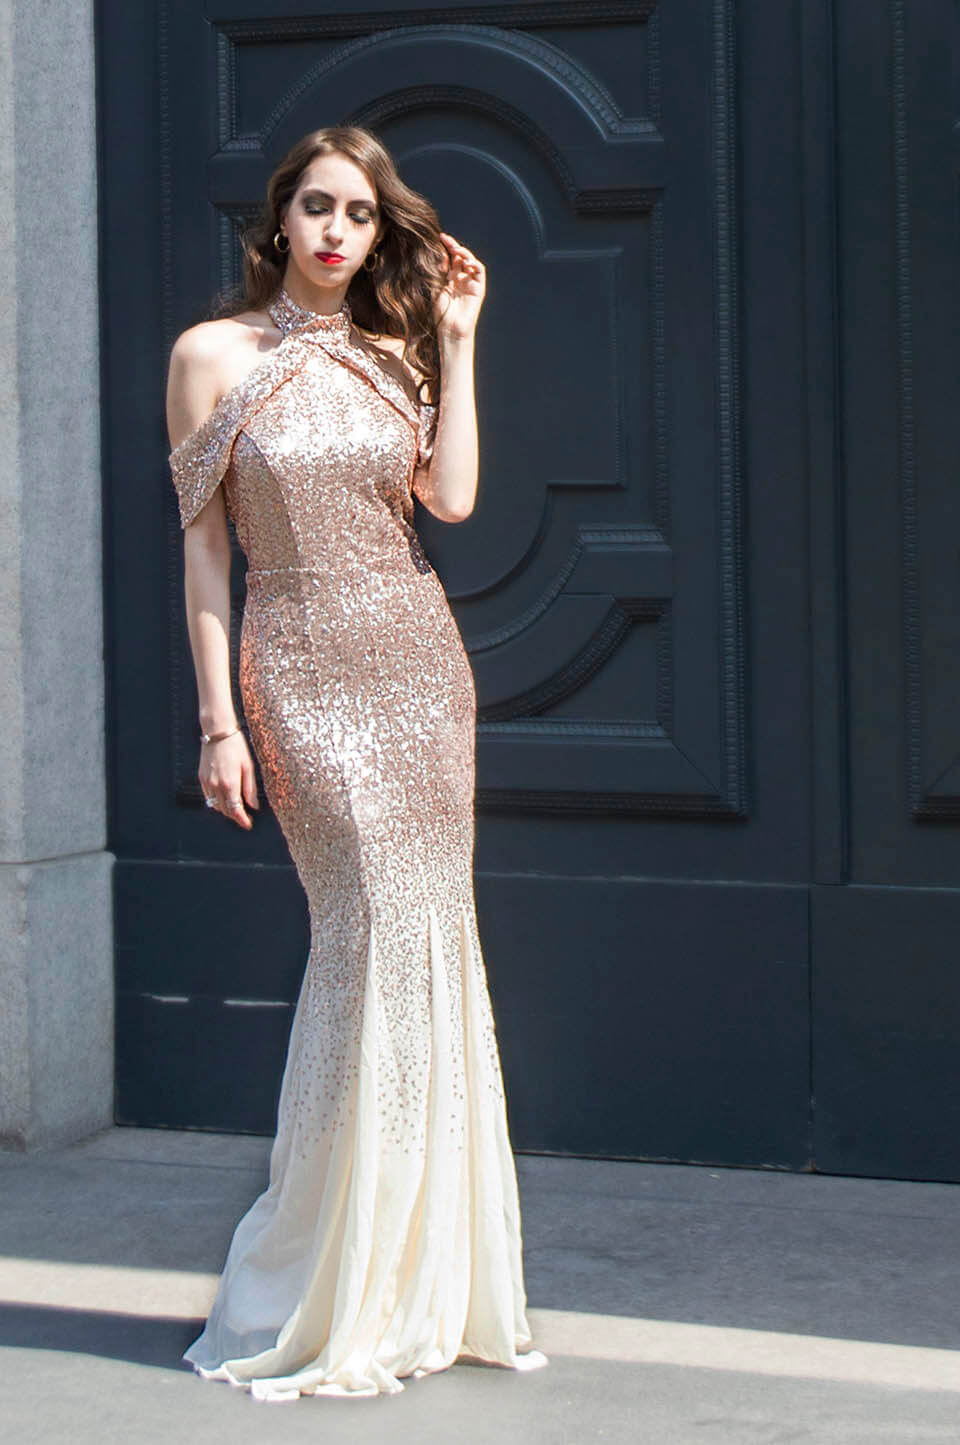 Sequin dress by Goddiva